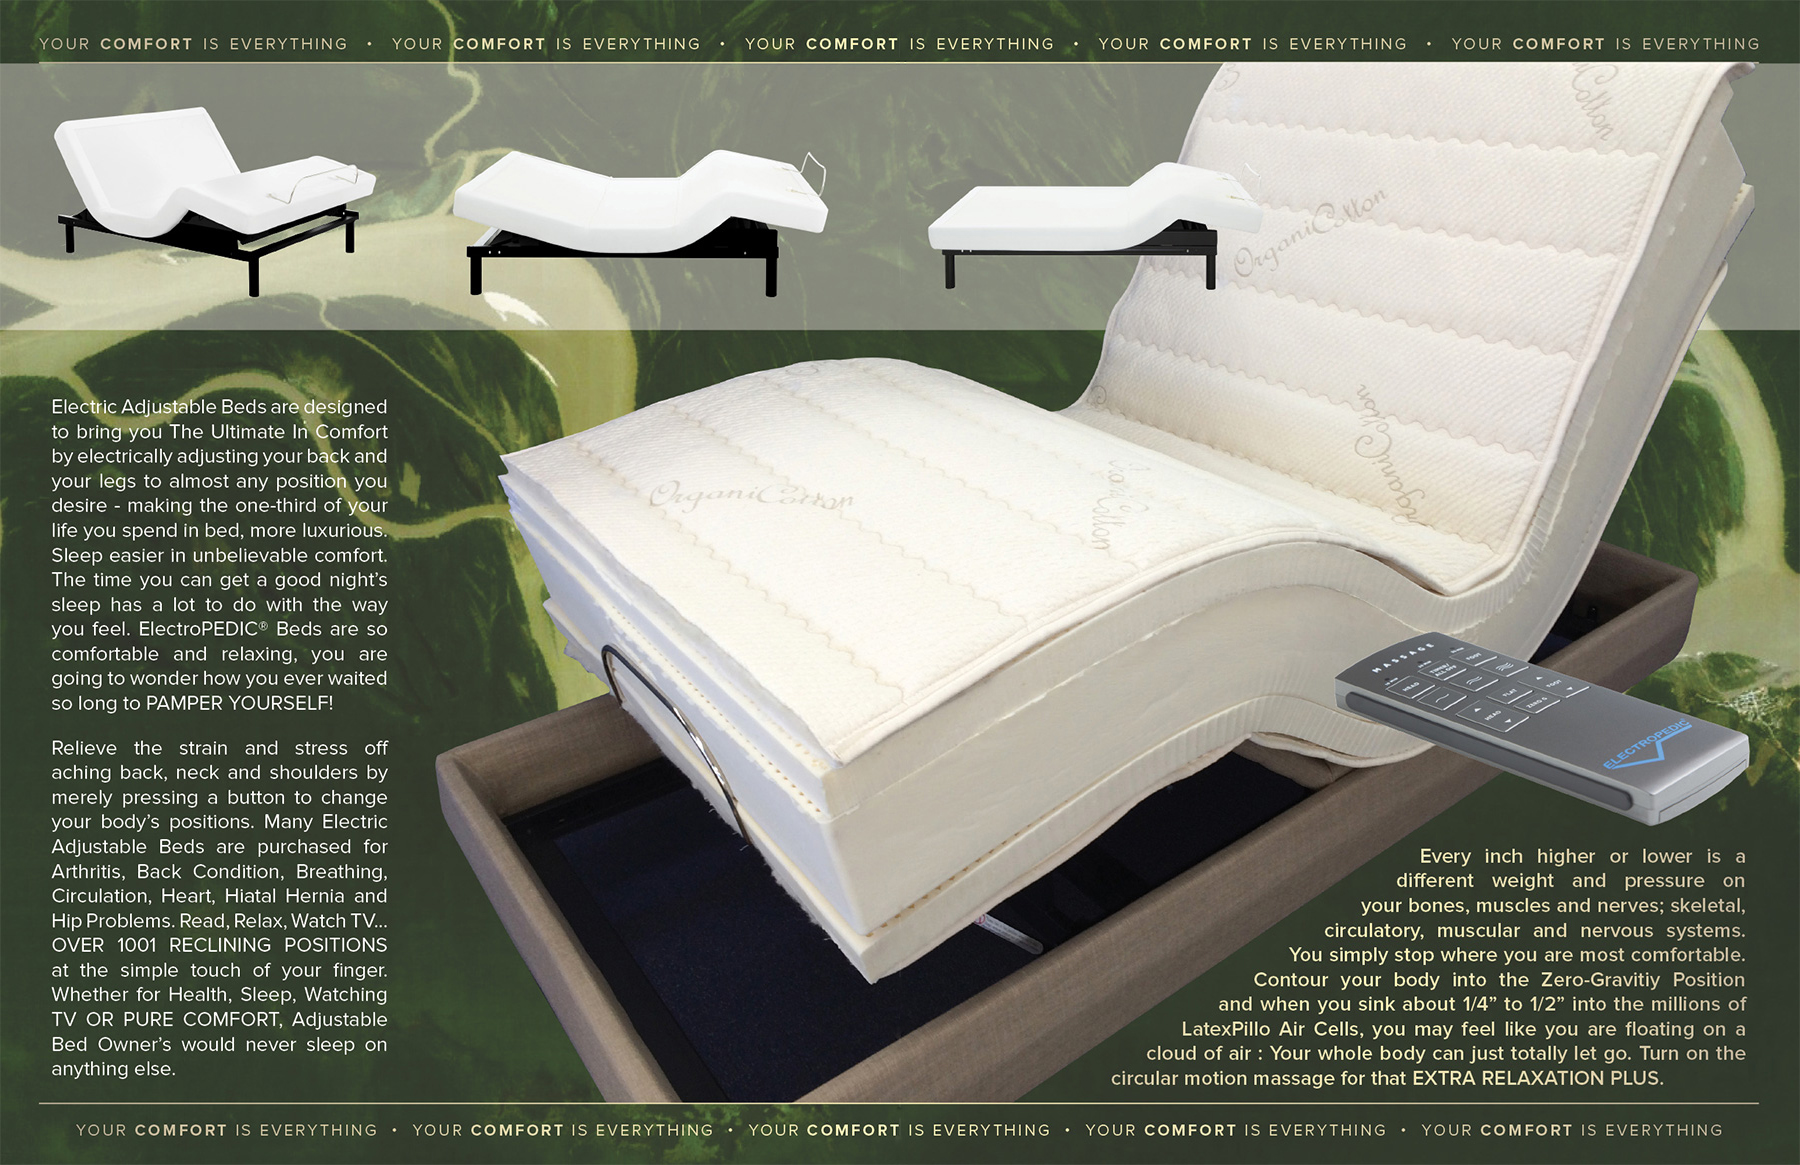 houston tx adjustablebeds electric hospitalbed medical texas